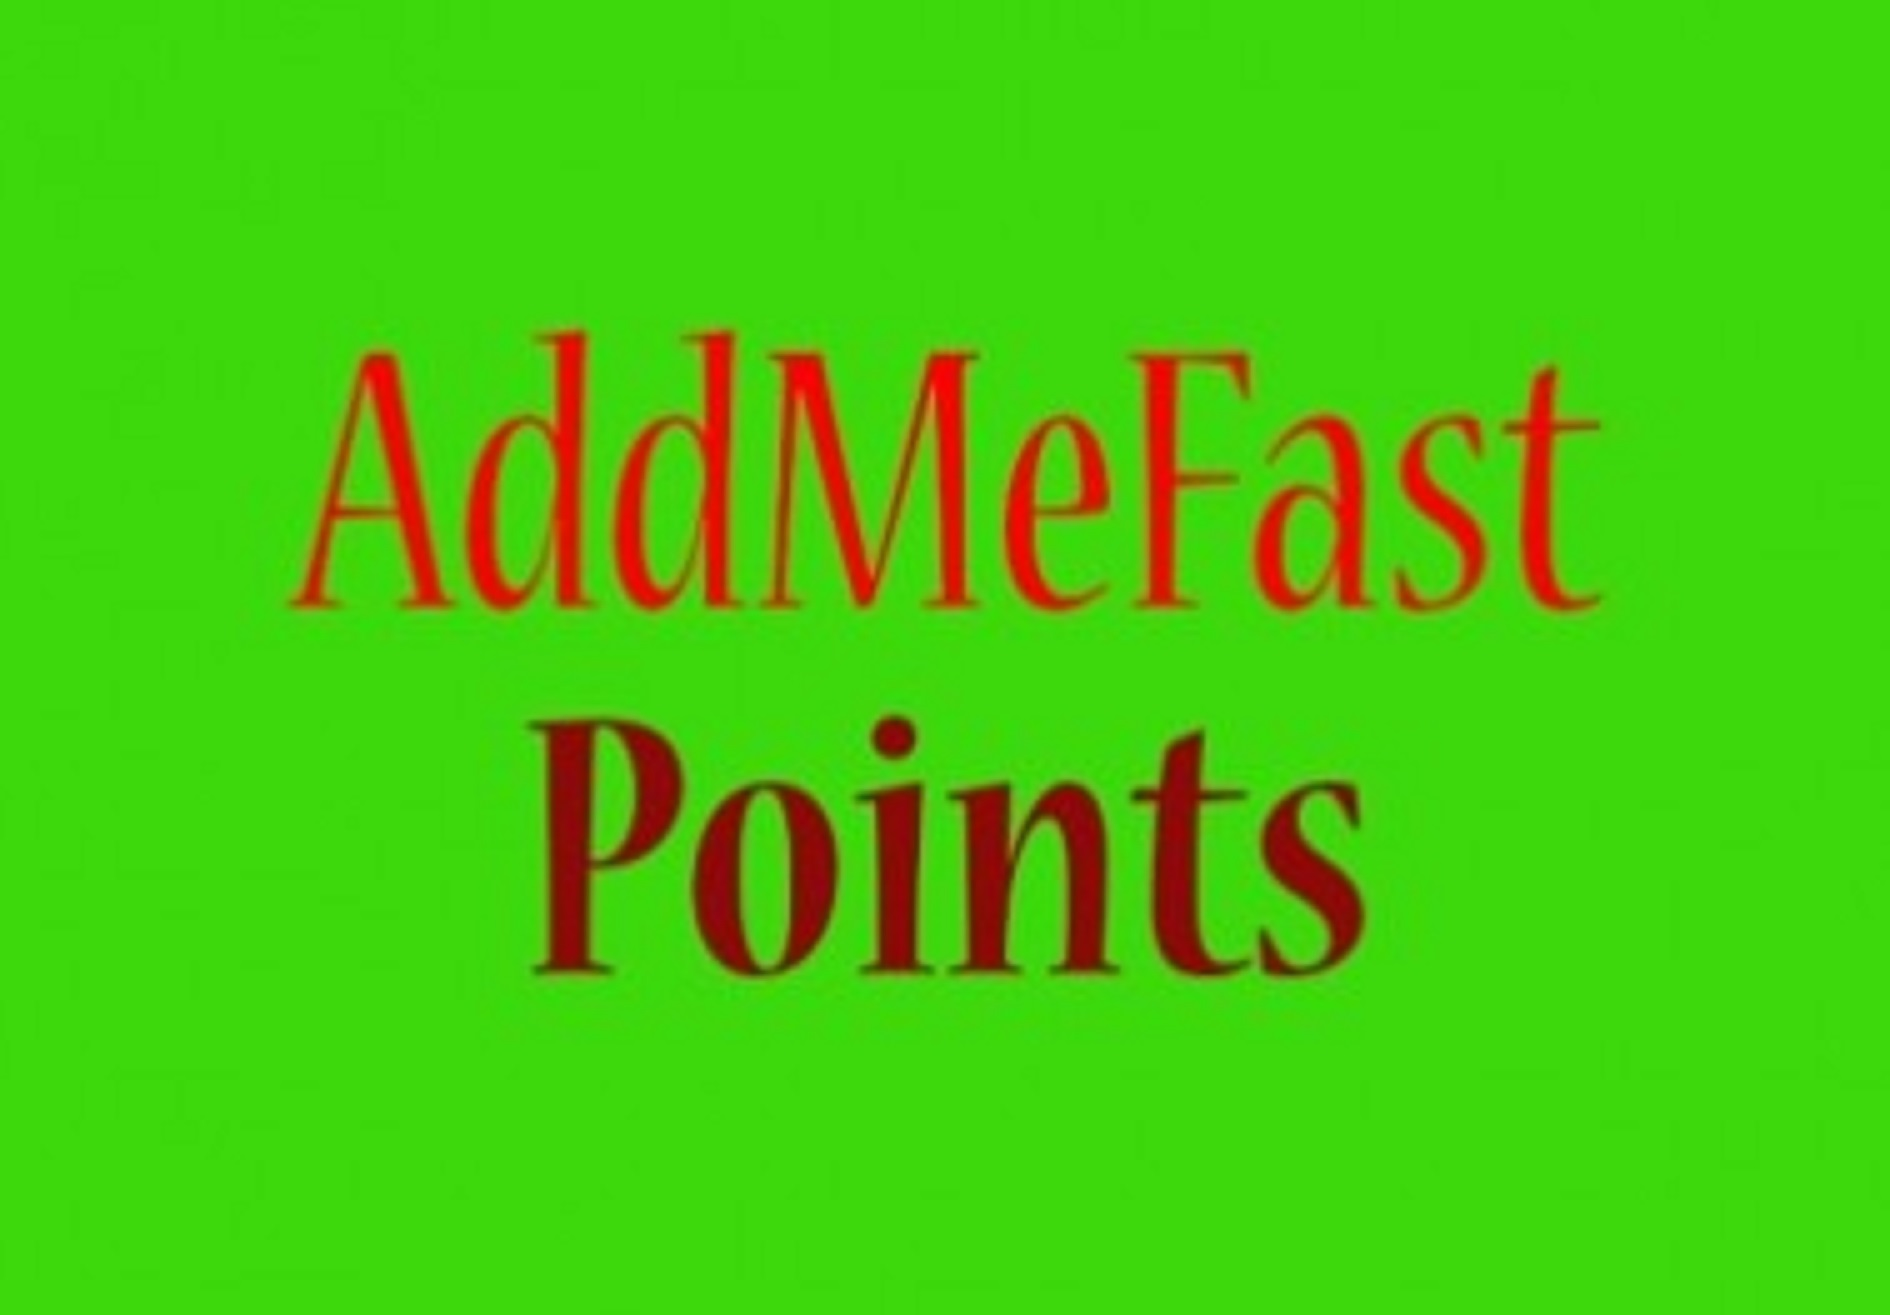 Give Addmefast 45000 points in one account